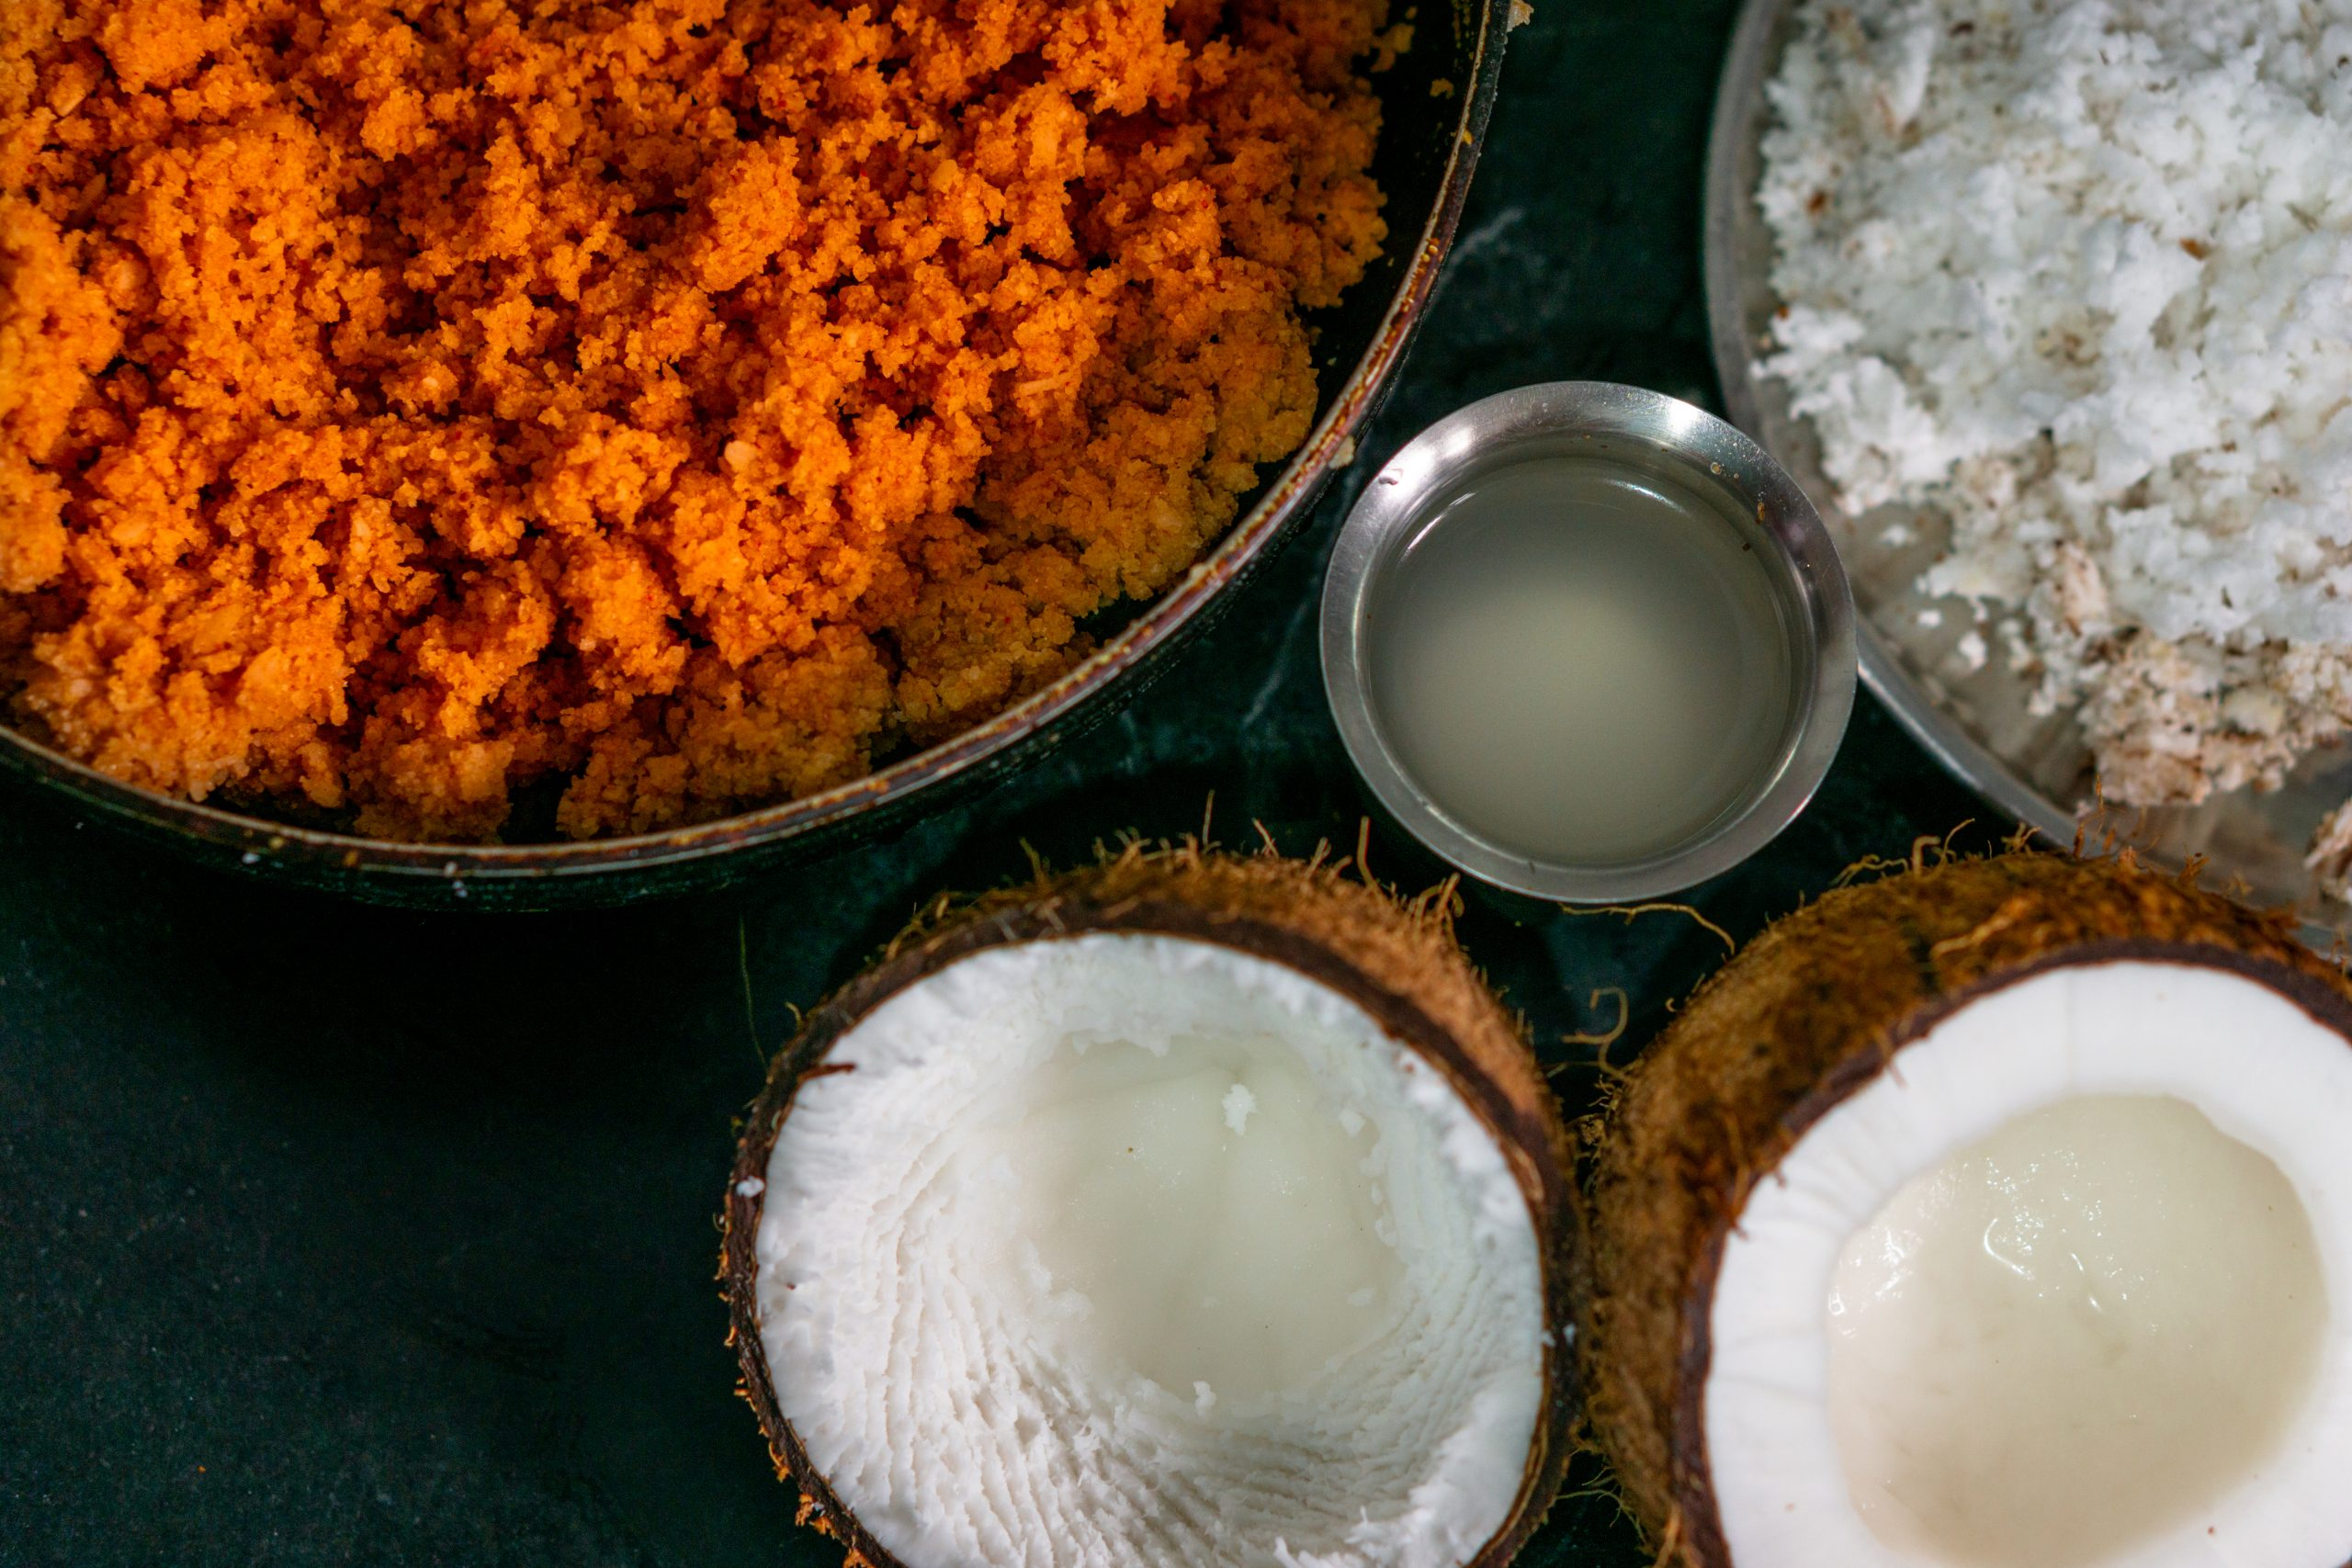 Dishes made of coconut